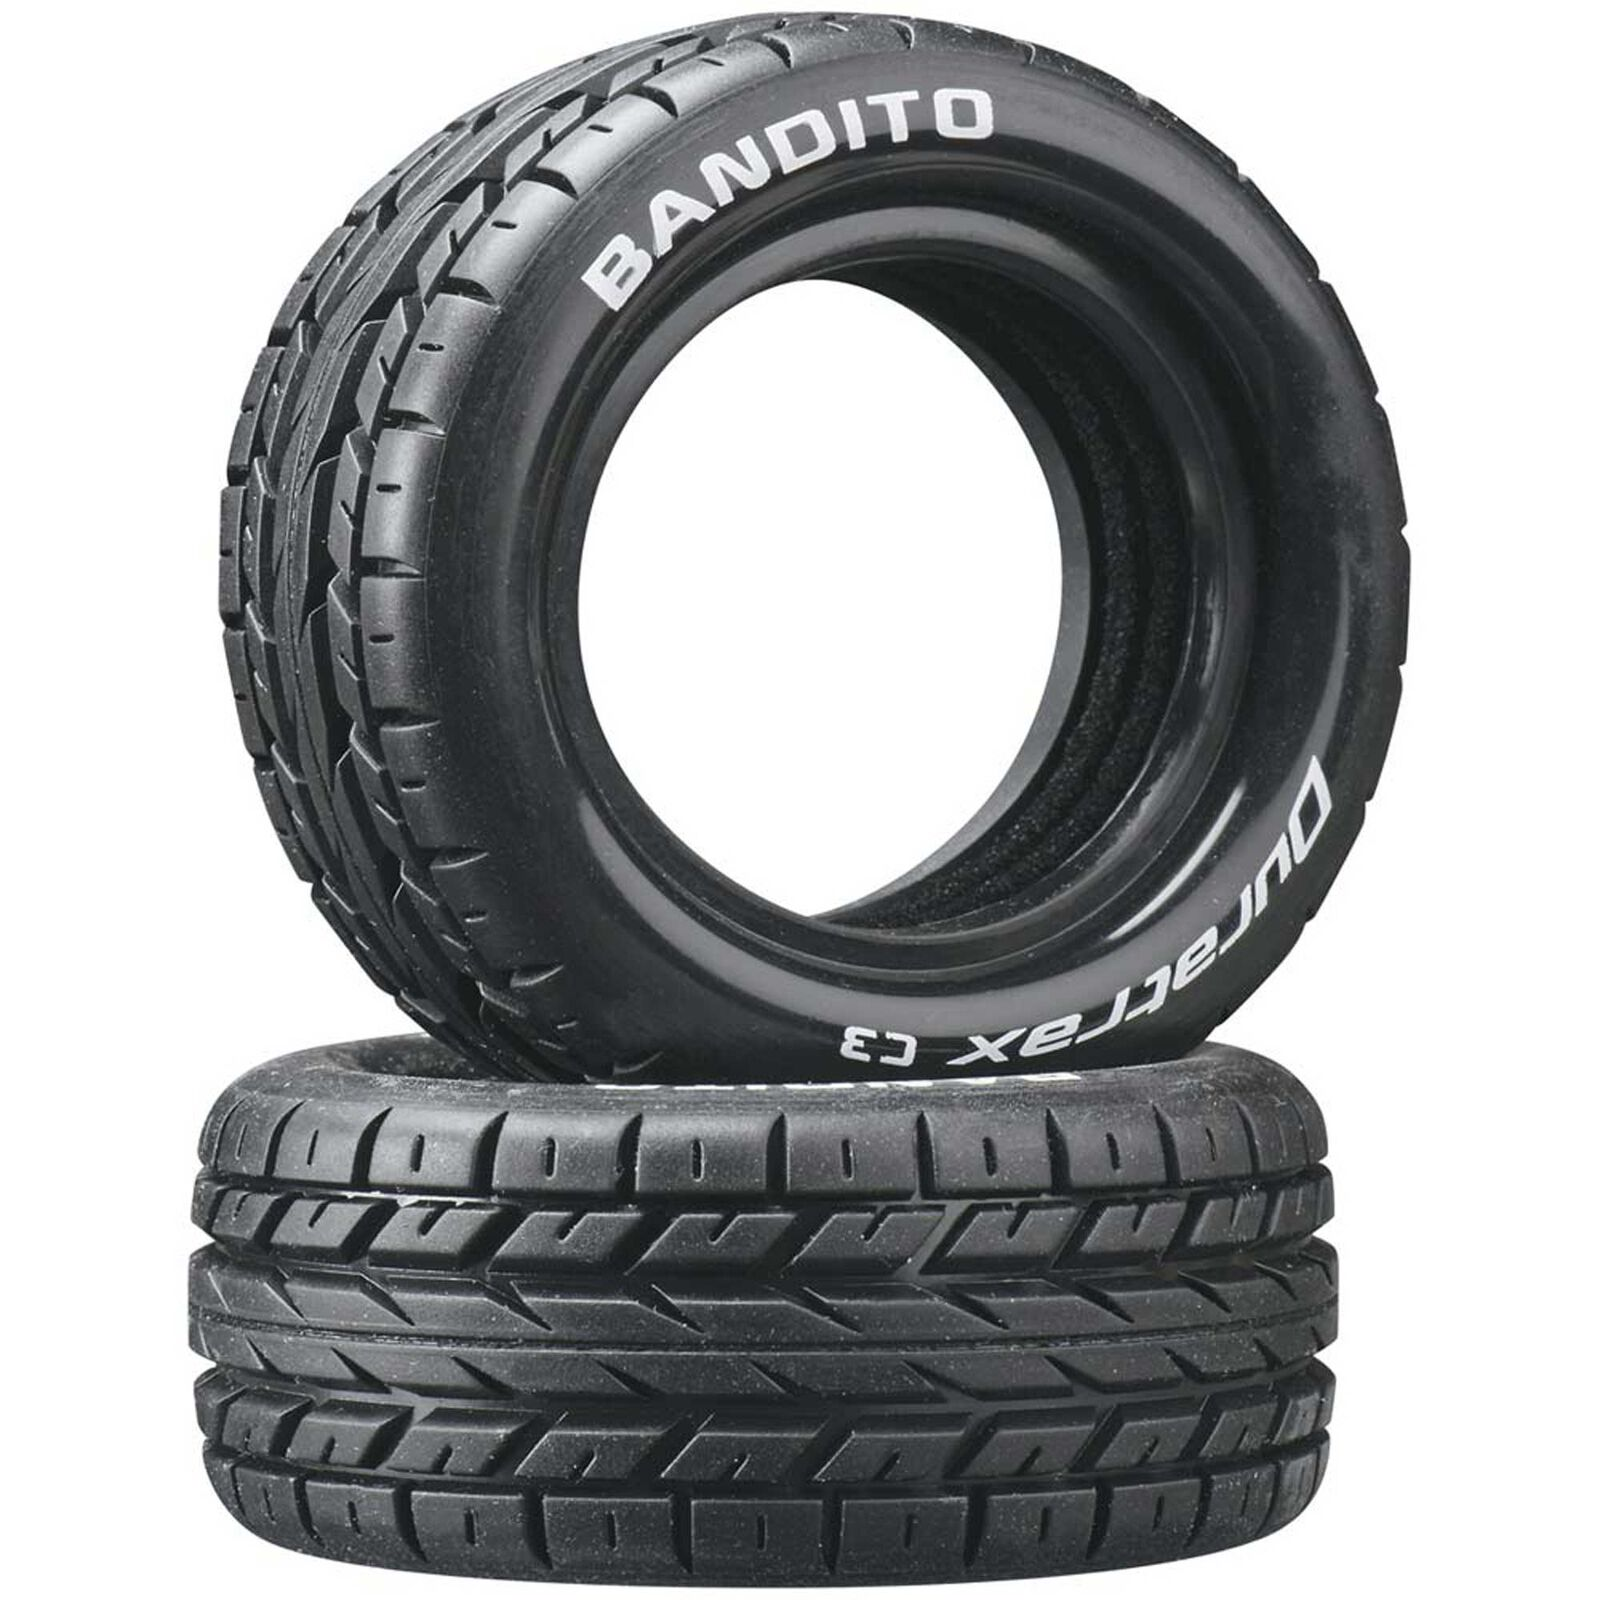 Bandito 1/10 Buggy Tires Front 4WD C3 (2)